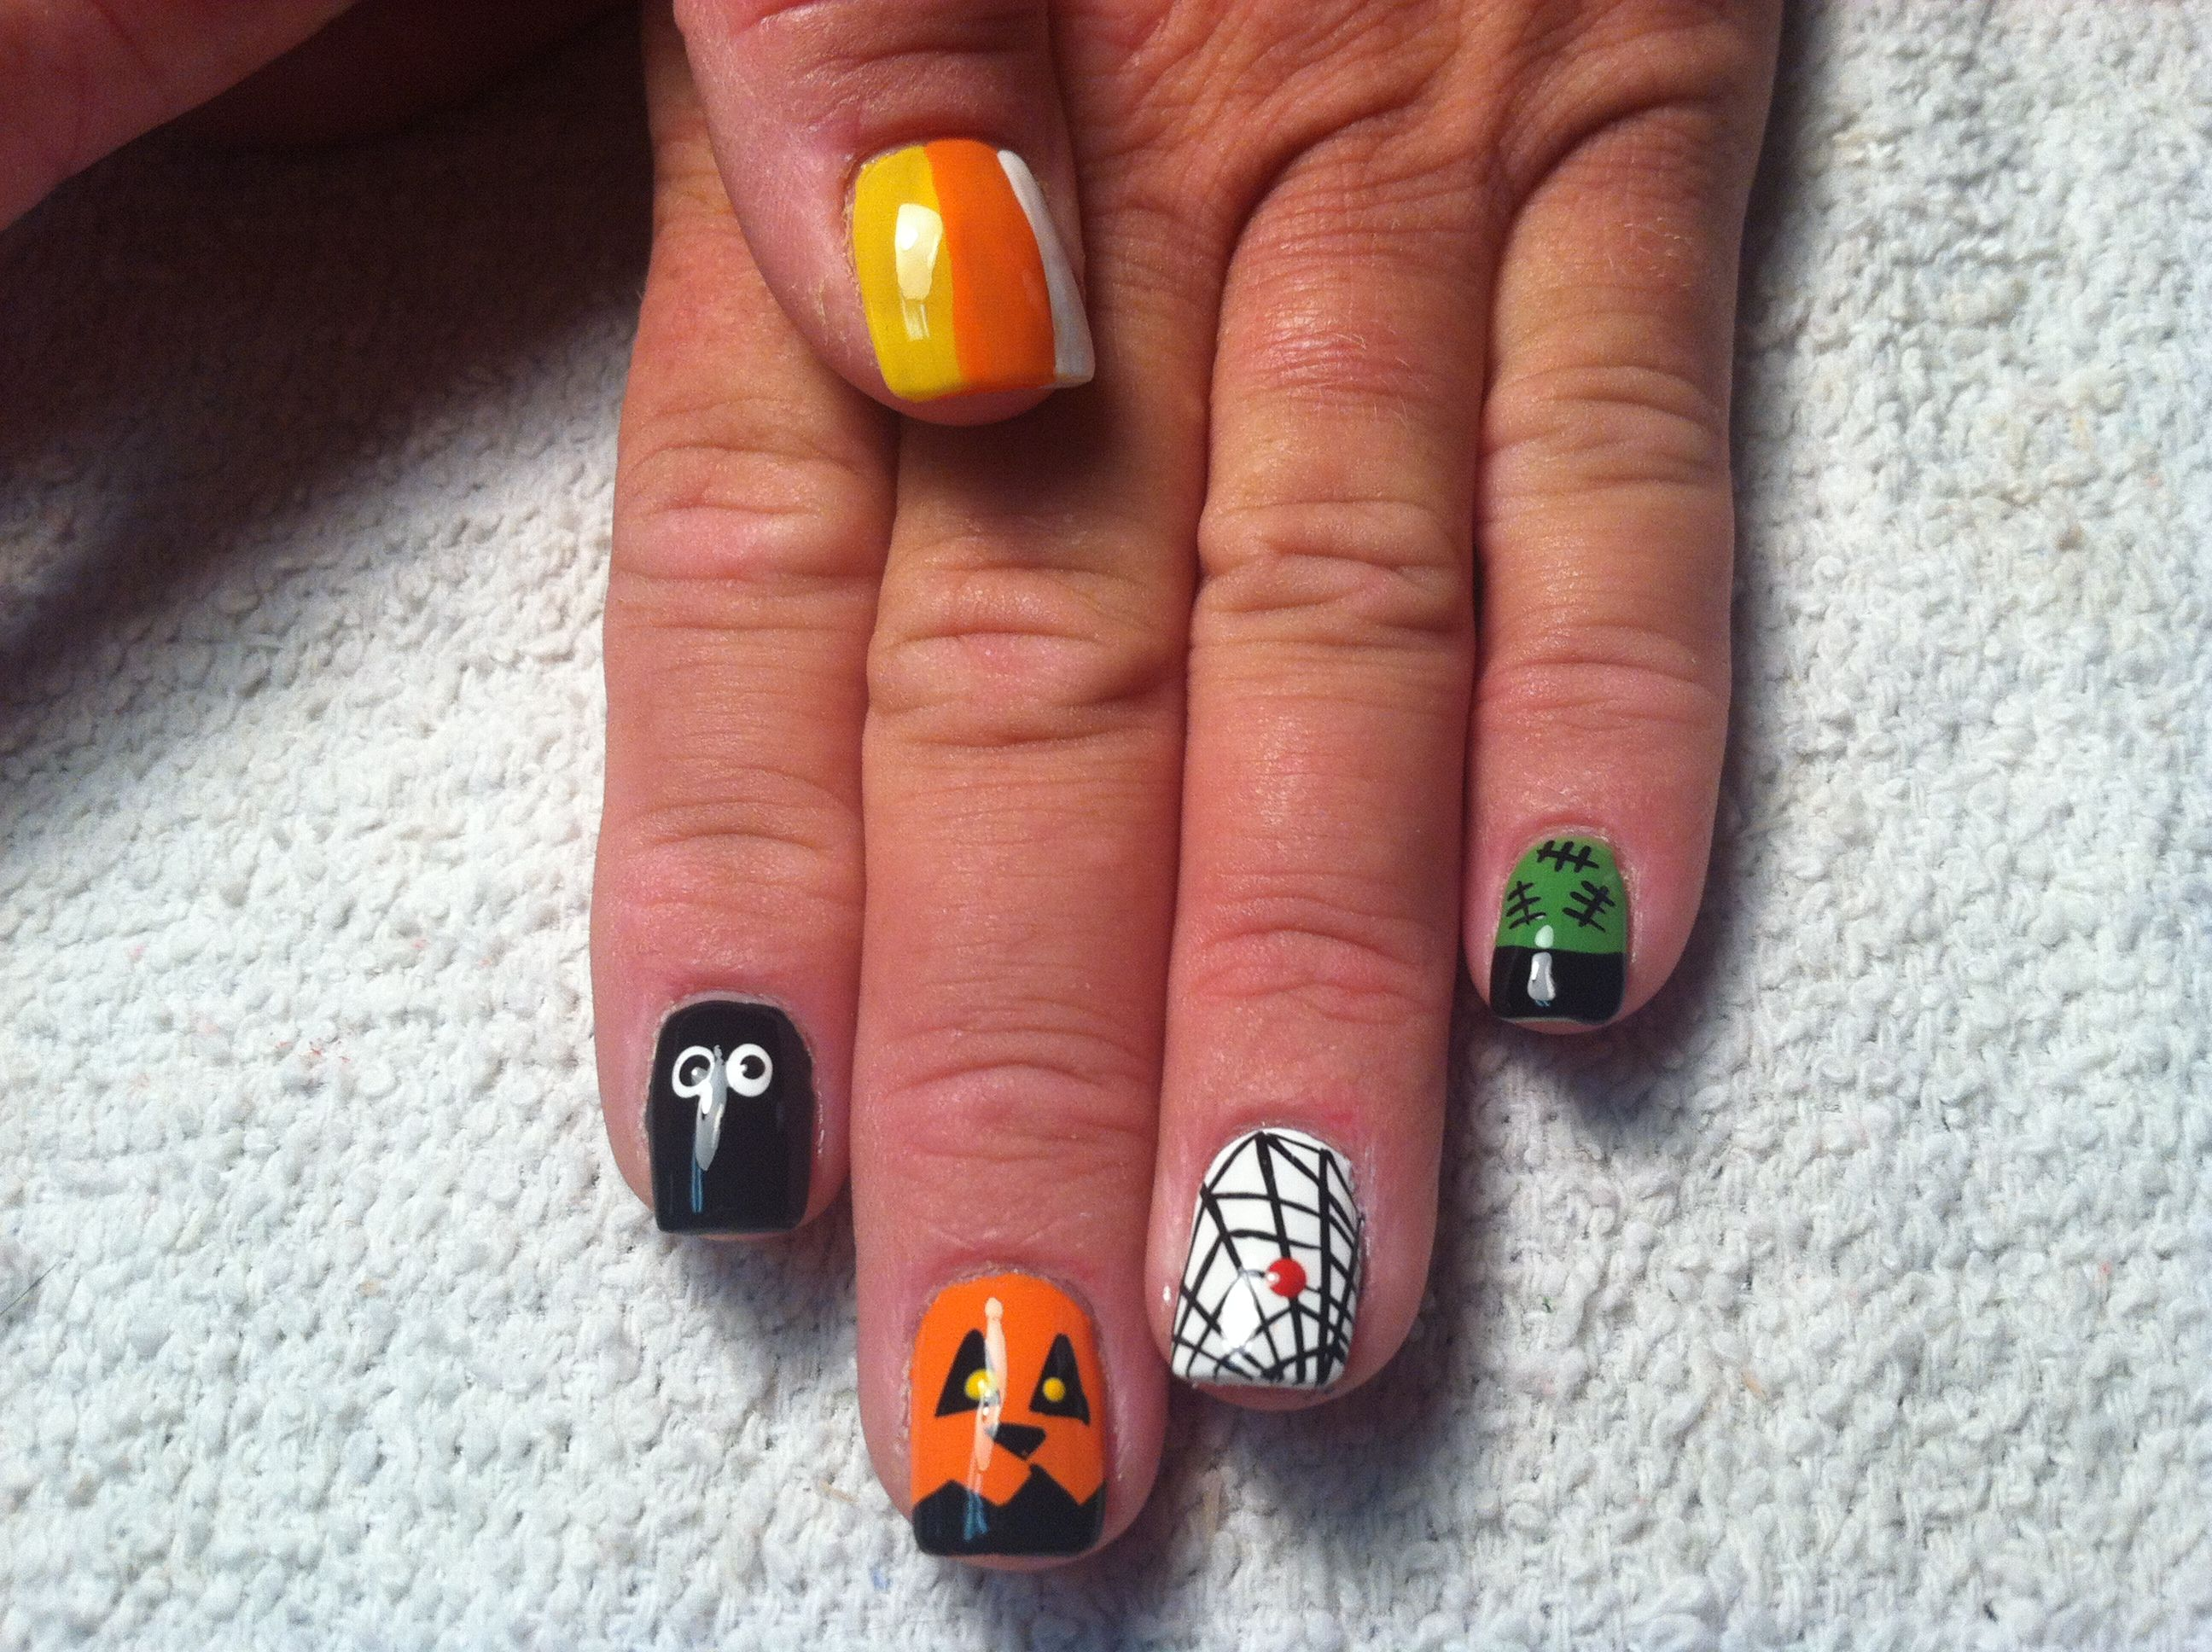 Free hand nail art by penny brown miss robin nail art by penny